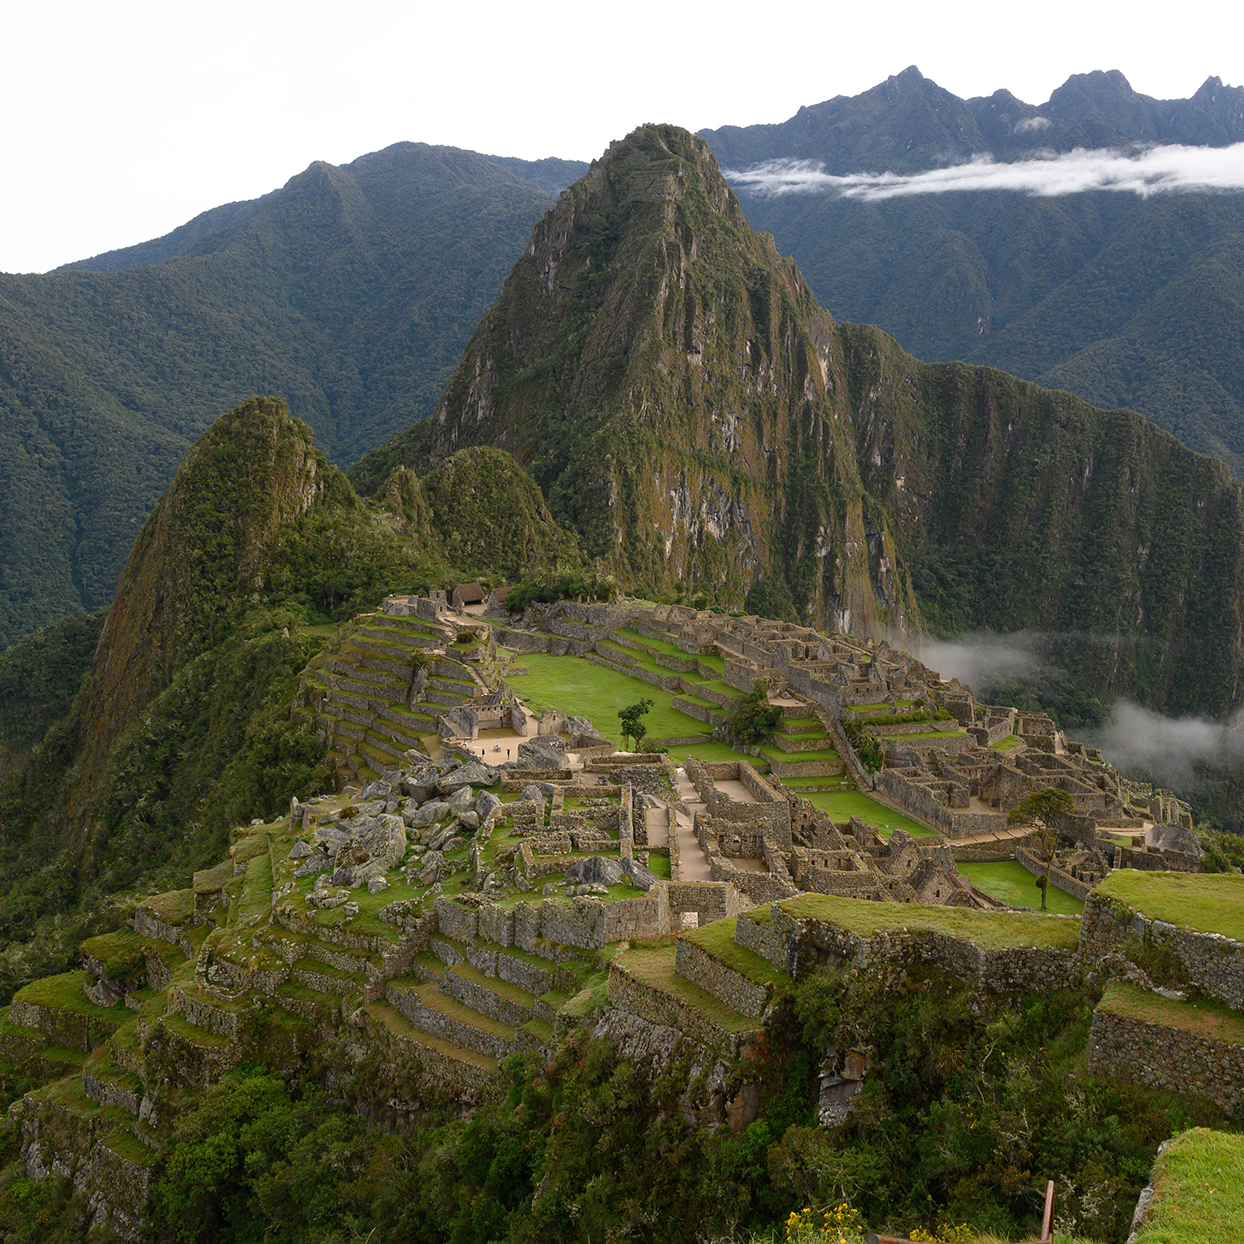 View of the Machu Picchu complex, the Inca fortress enclaved in the south eastern Andes of Peru on April 24, 2019